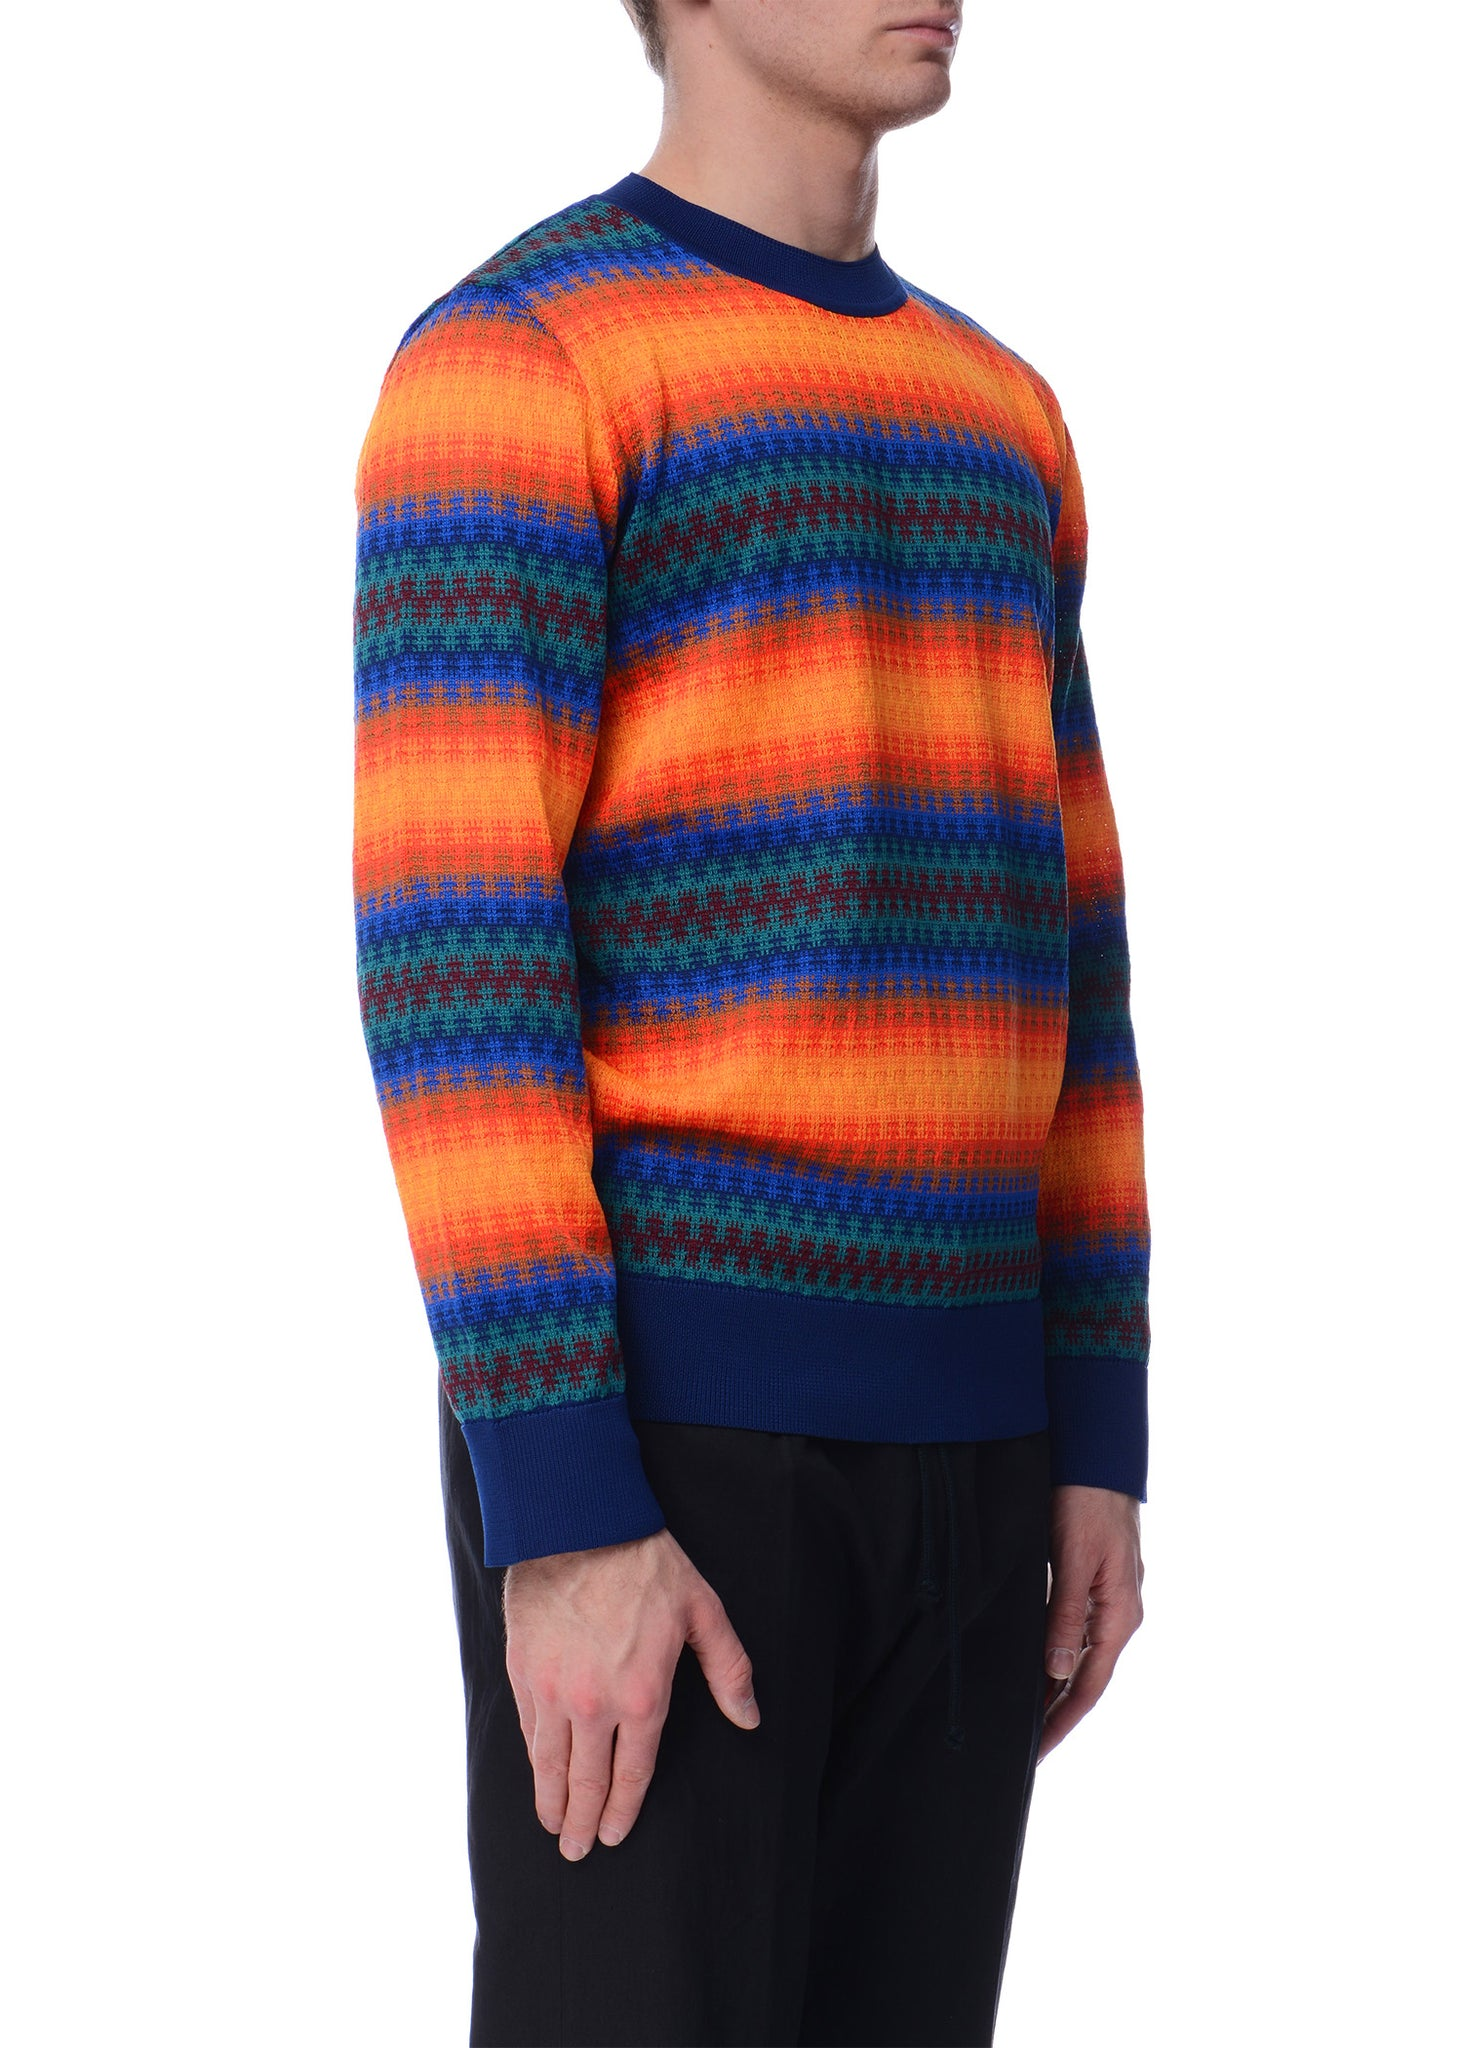 Pull Rayé en Maille Multicolore|Multicolor Striped Knitted Sweater